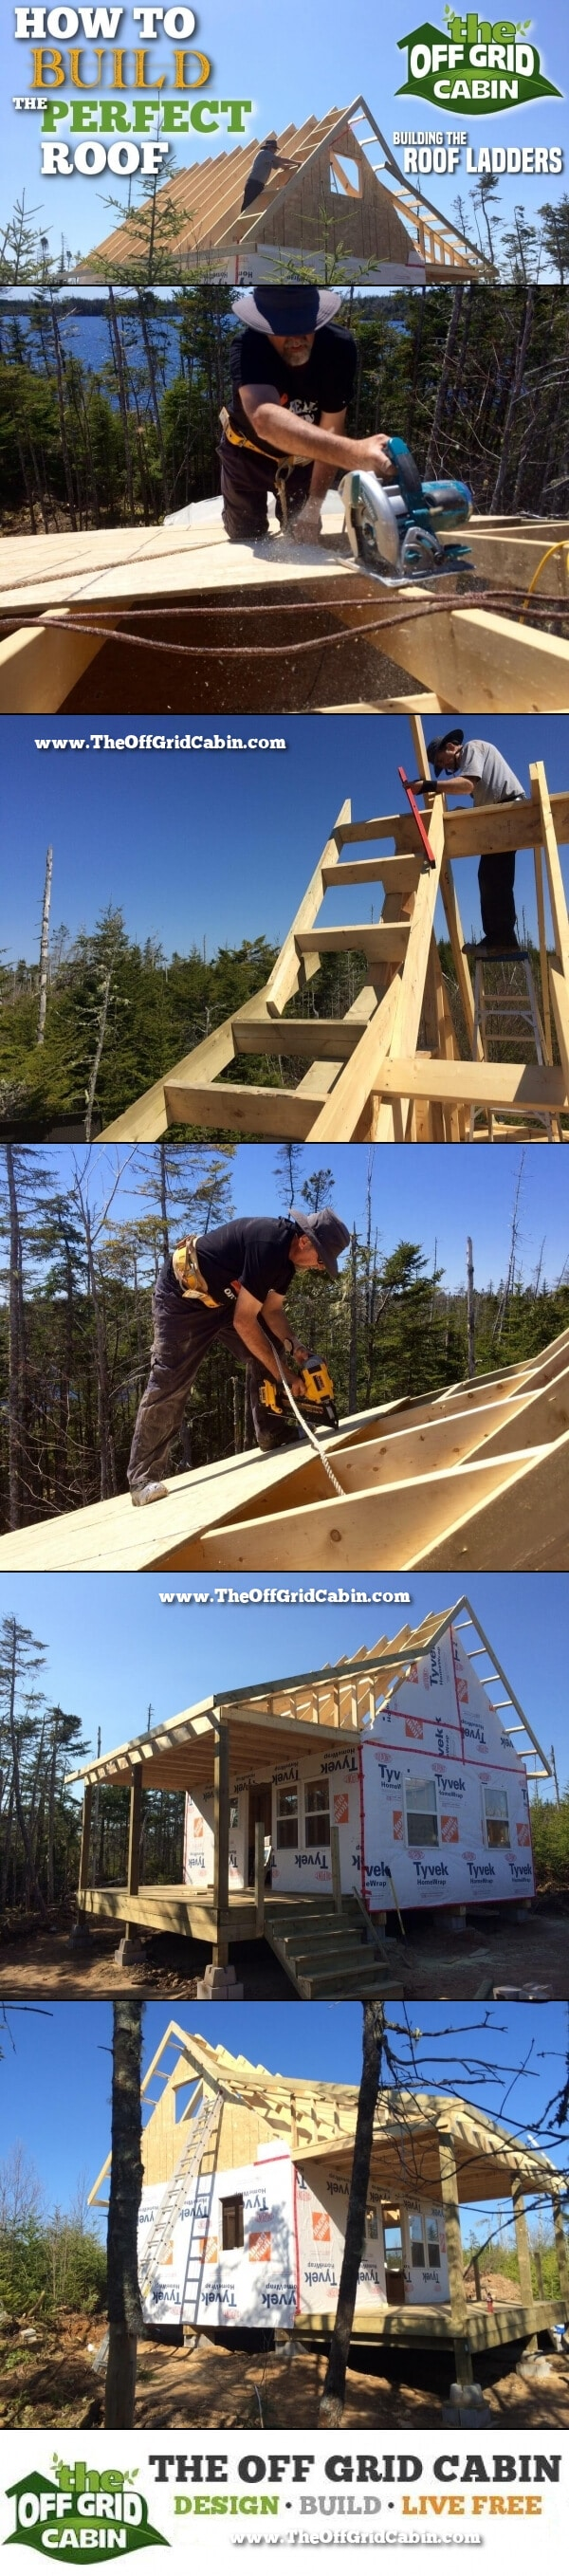 The Off Grid Cabin How To Build The Perfect Roof Rake Ladder Pinterest Image